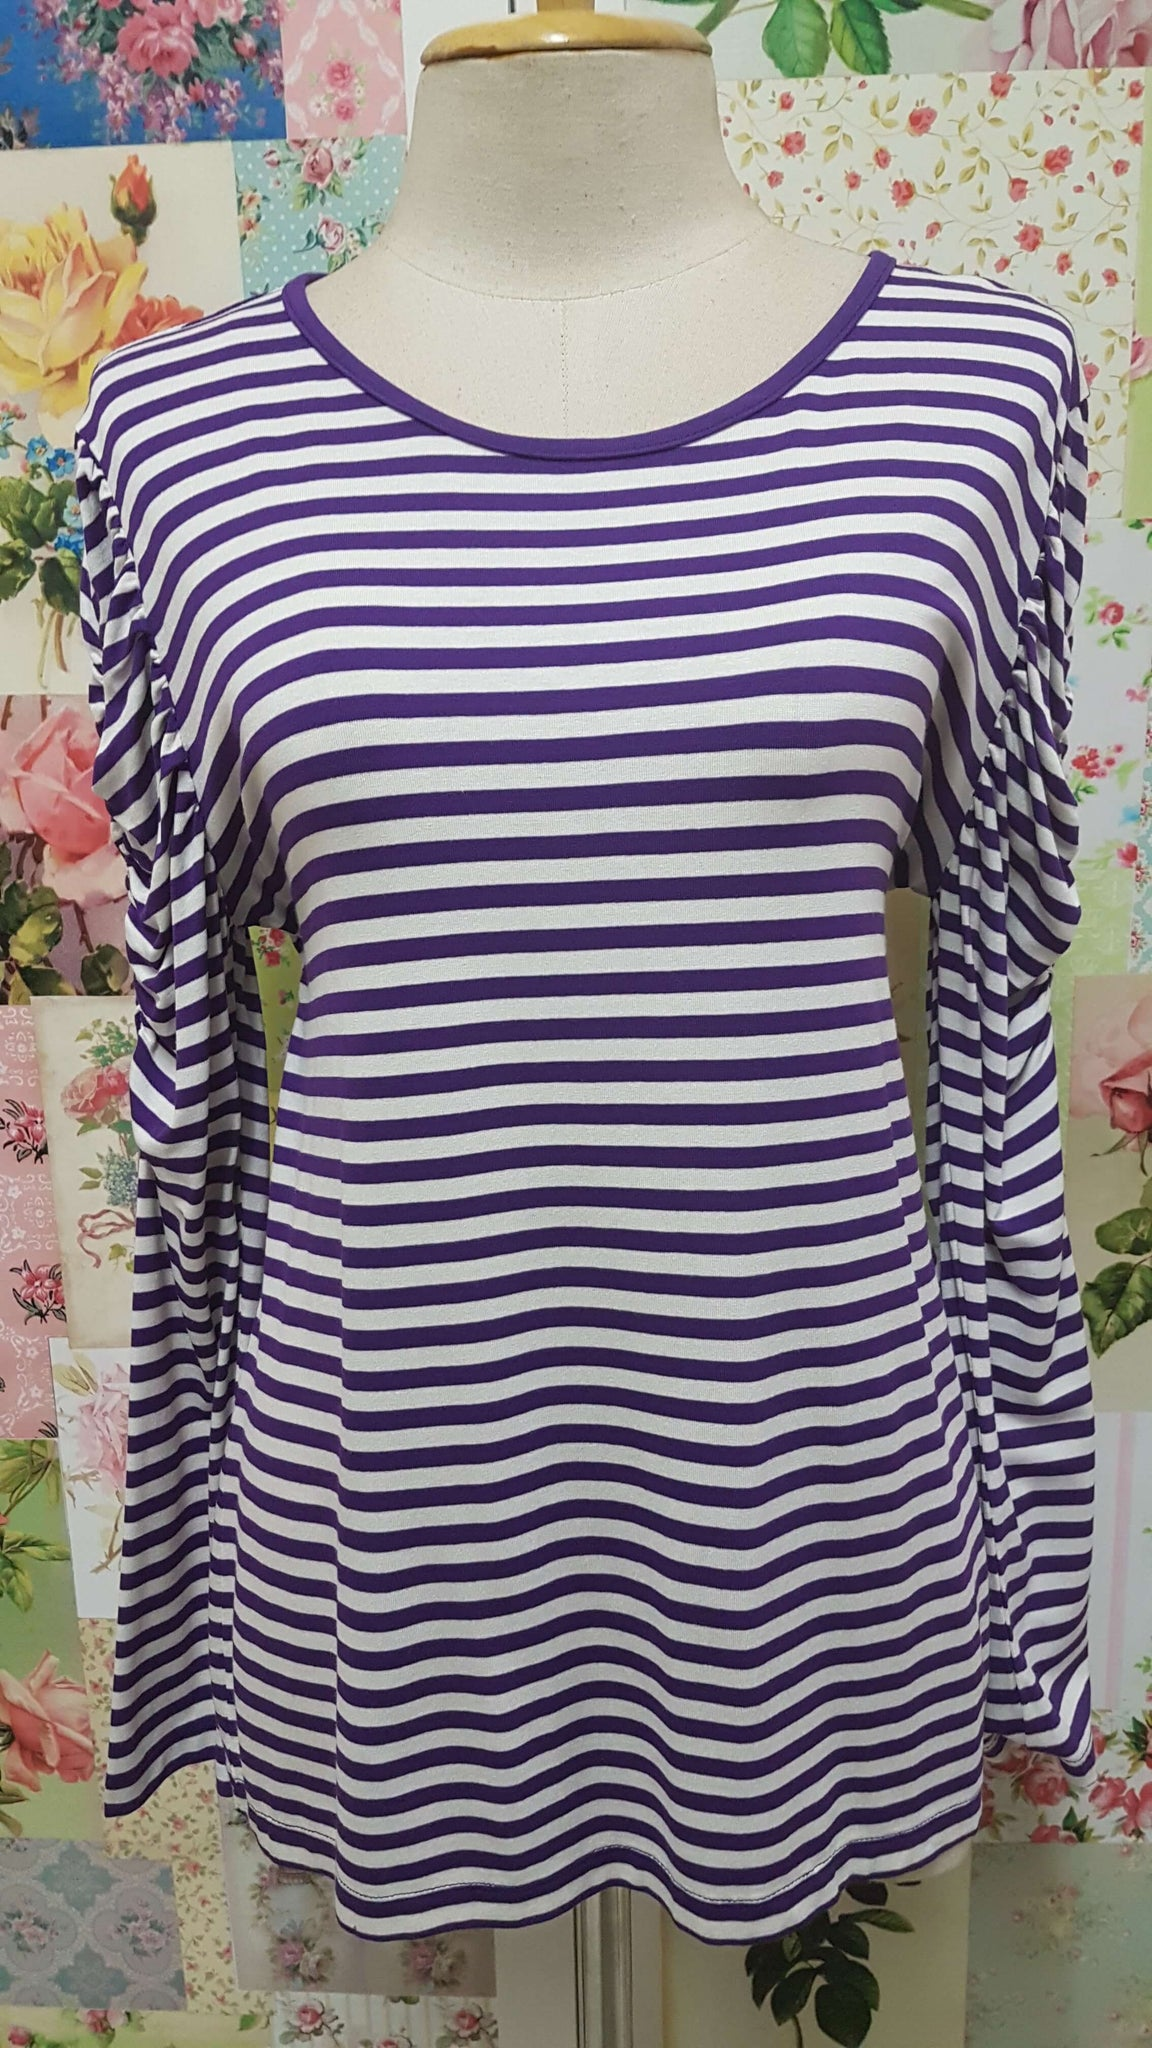 Purple & White Top BK0297